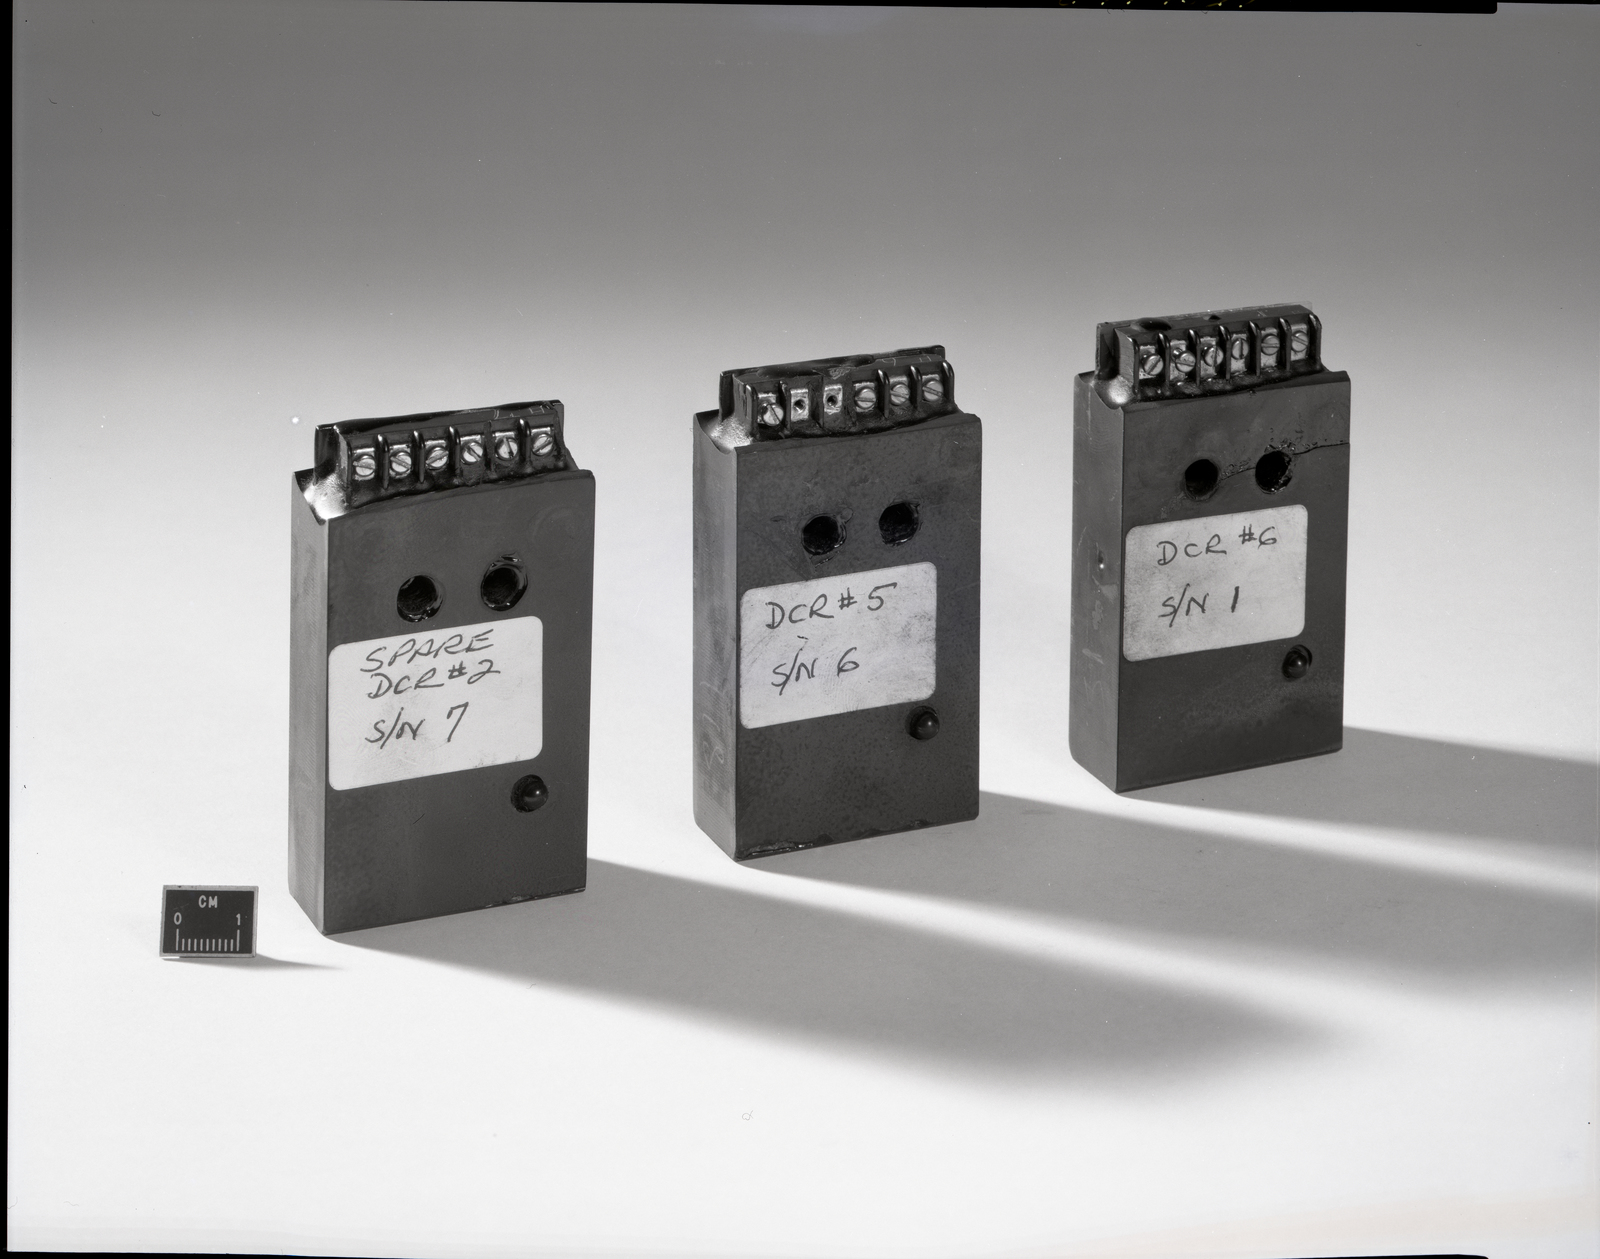 DCR AND SOLID STATE RELAYS